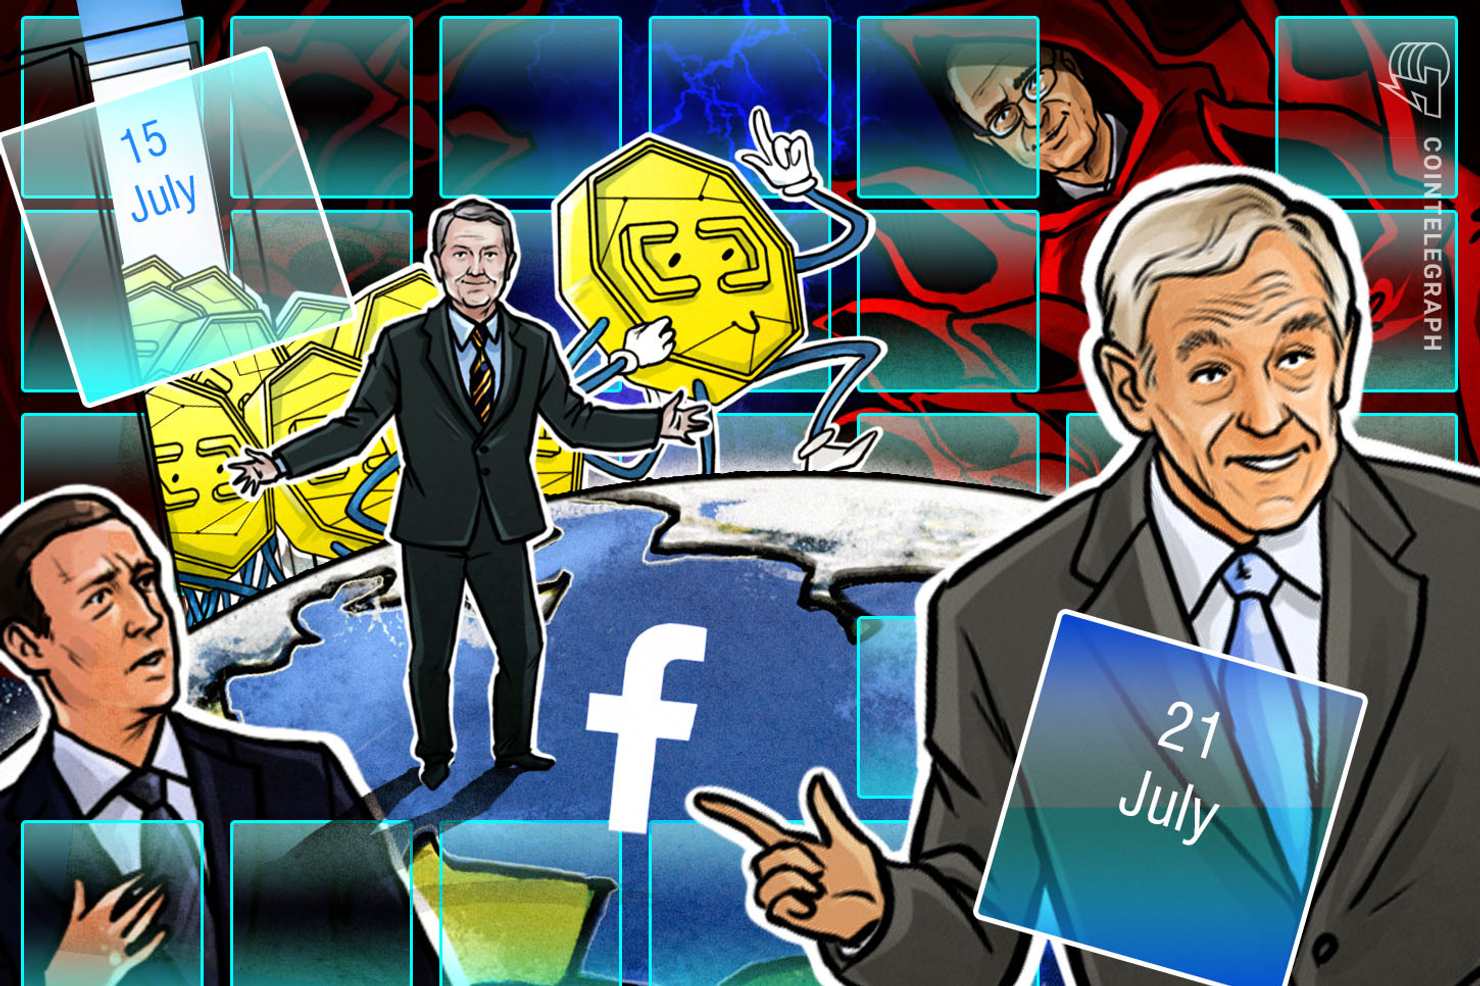 Hodlers Digest, July 15–21: Libra Special! Top Stories, Price Movements, Quotes and FUDs of the Week